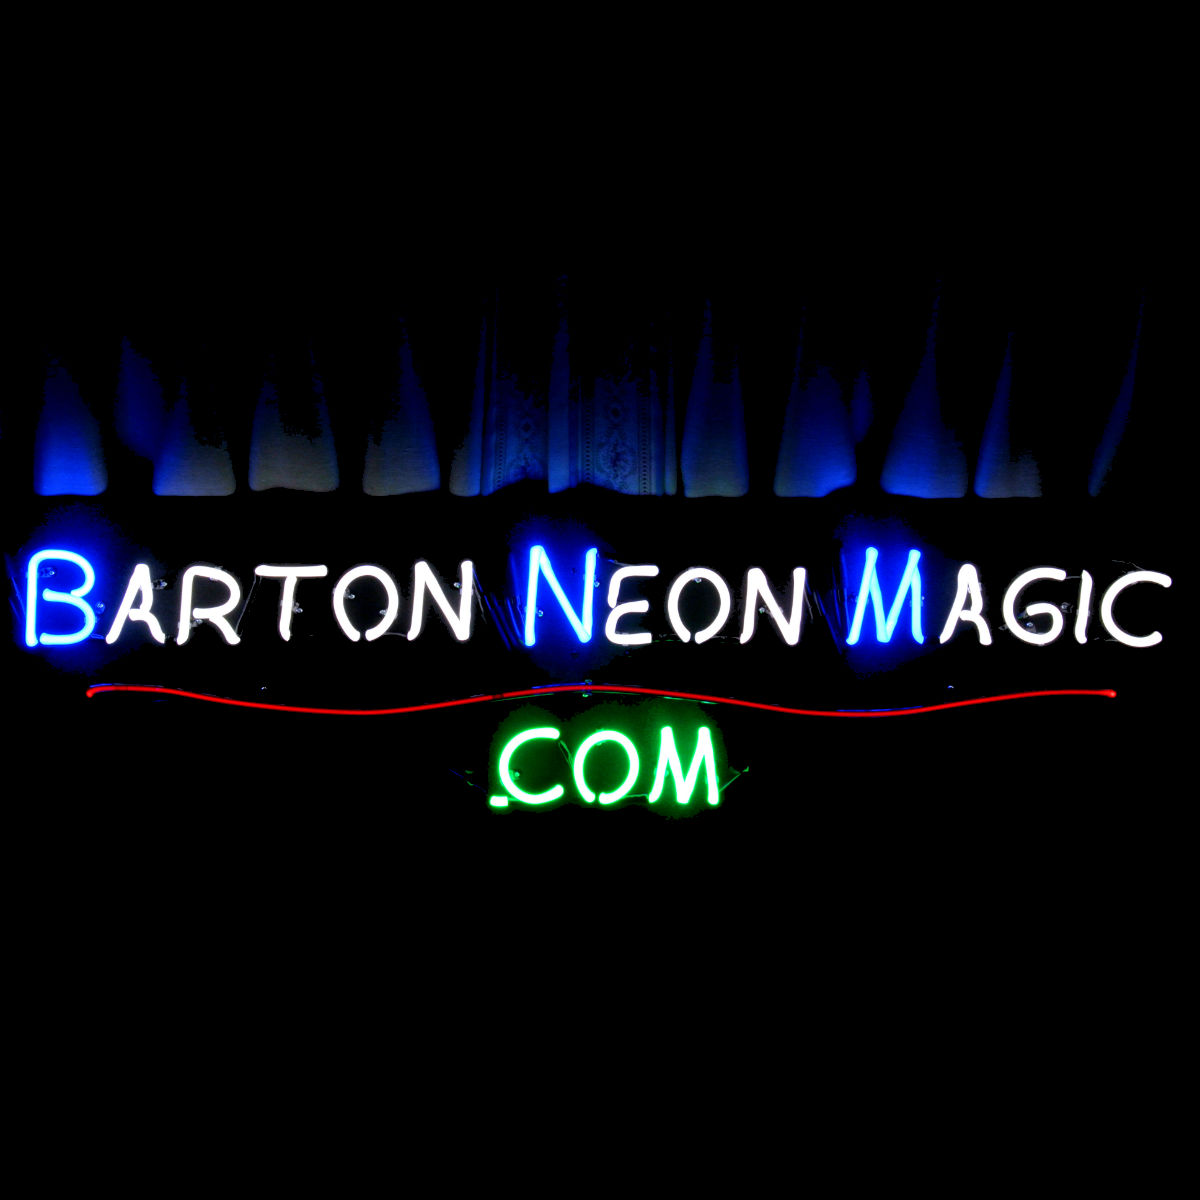 Fine Quality NEON LIGHT FIXTURES AND NEON CHANDELIERS - by John Barton - BartonNeonMagic.com